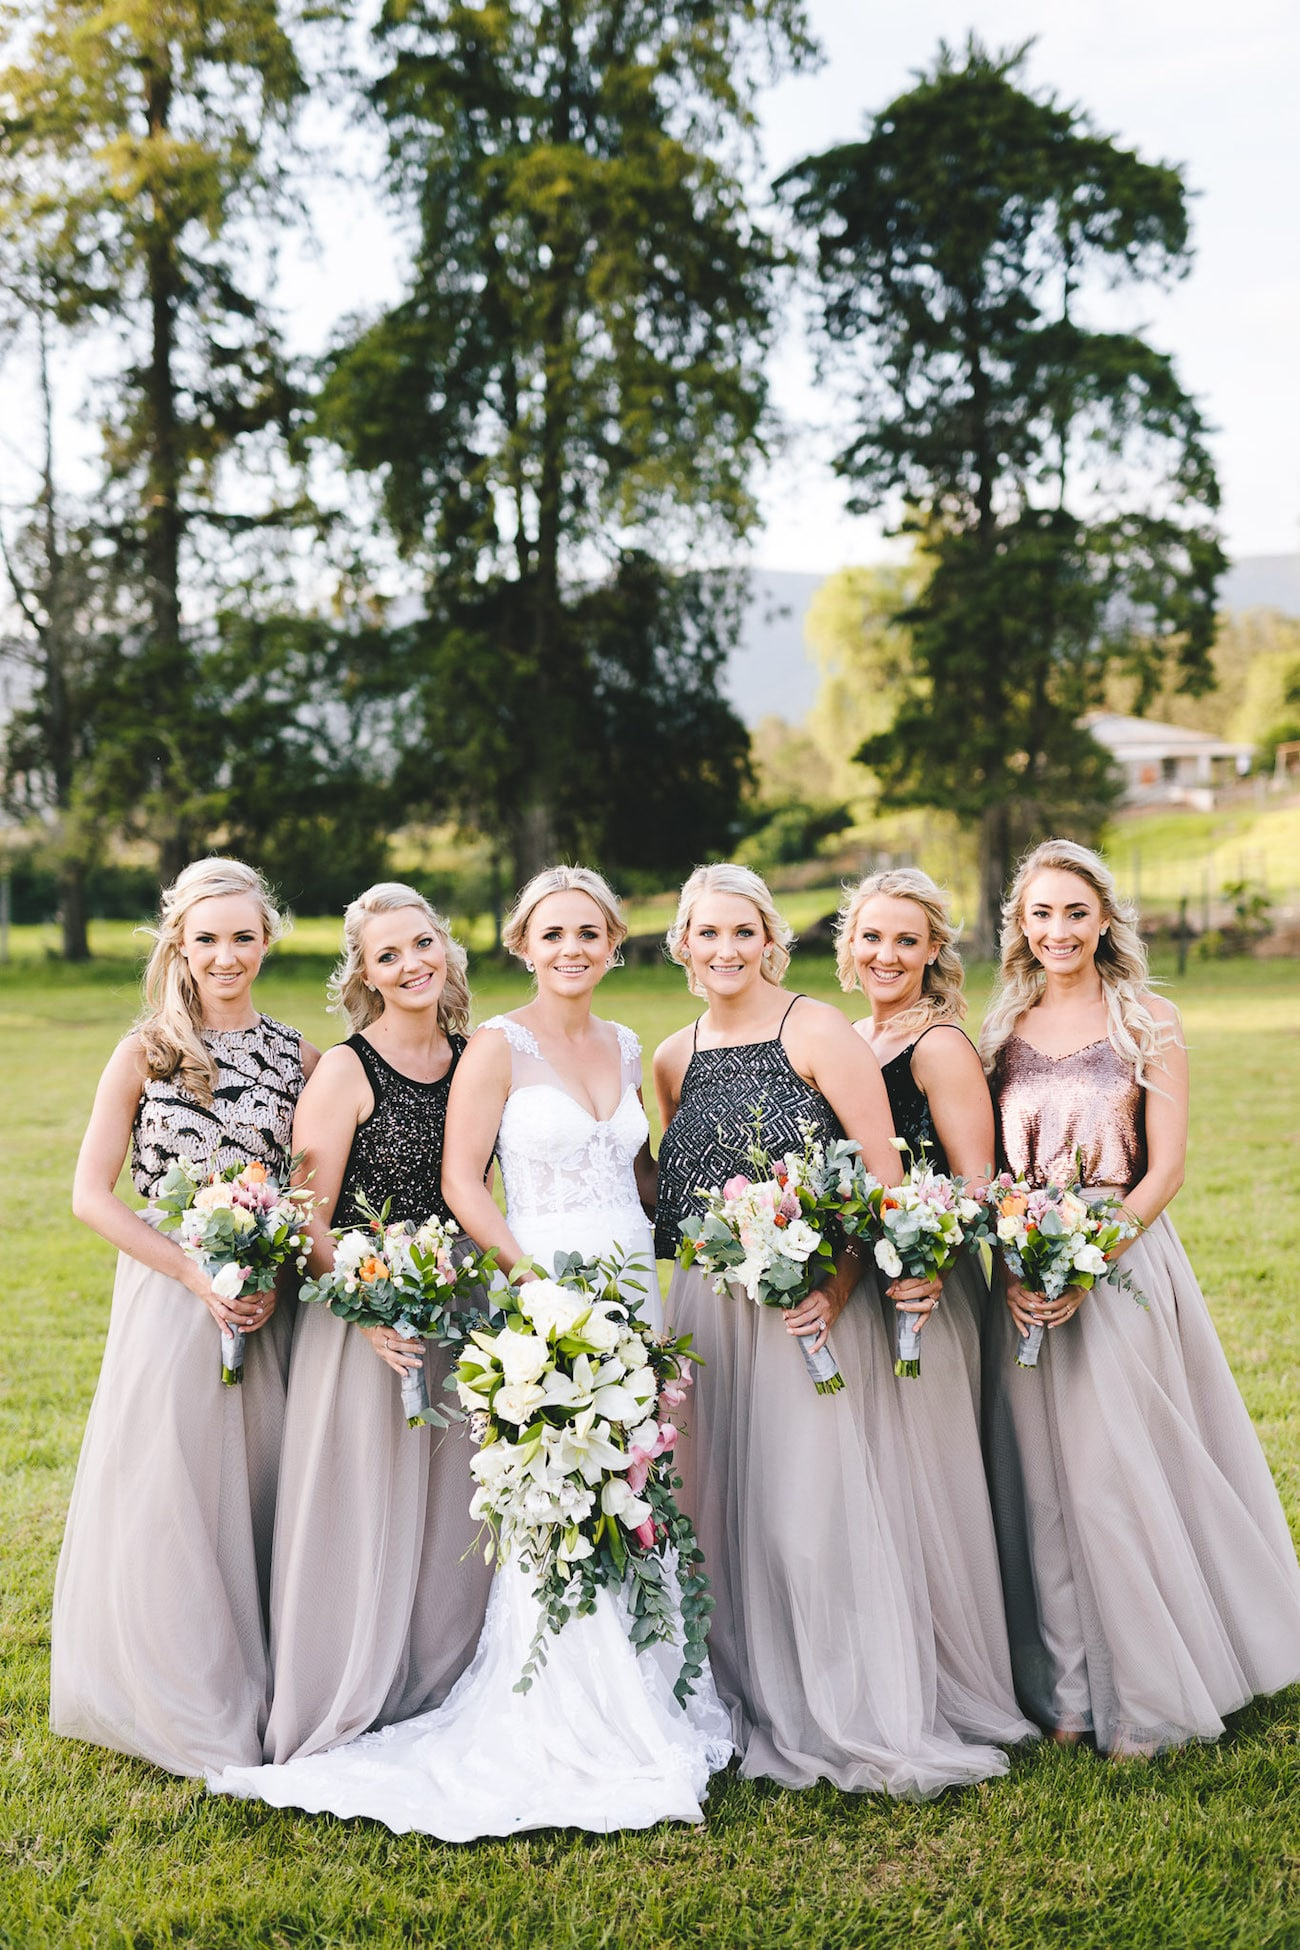 Mismatched Bridesmaid Separates | Credit: Charlie Ray Photography